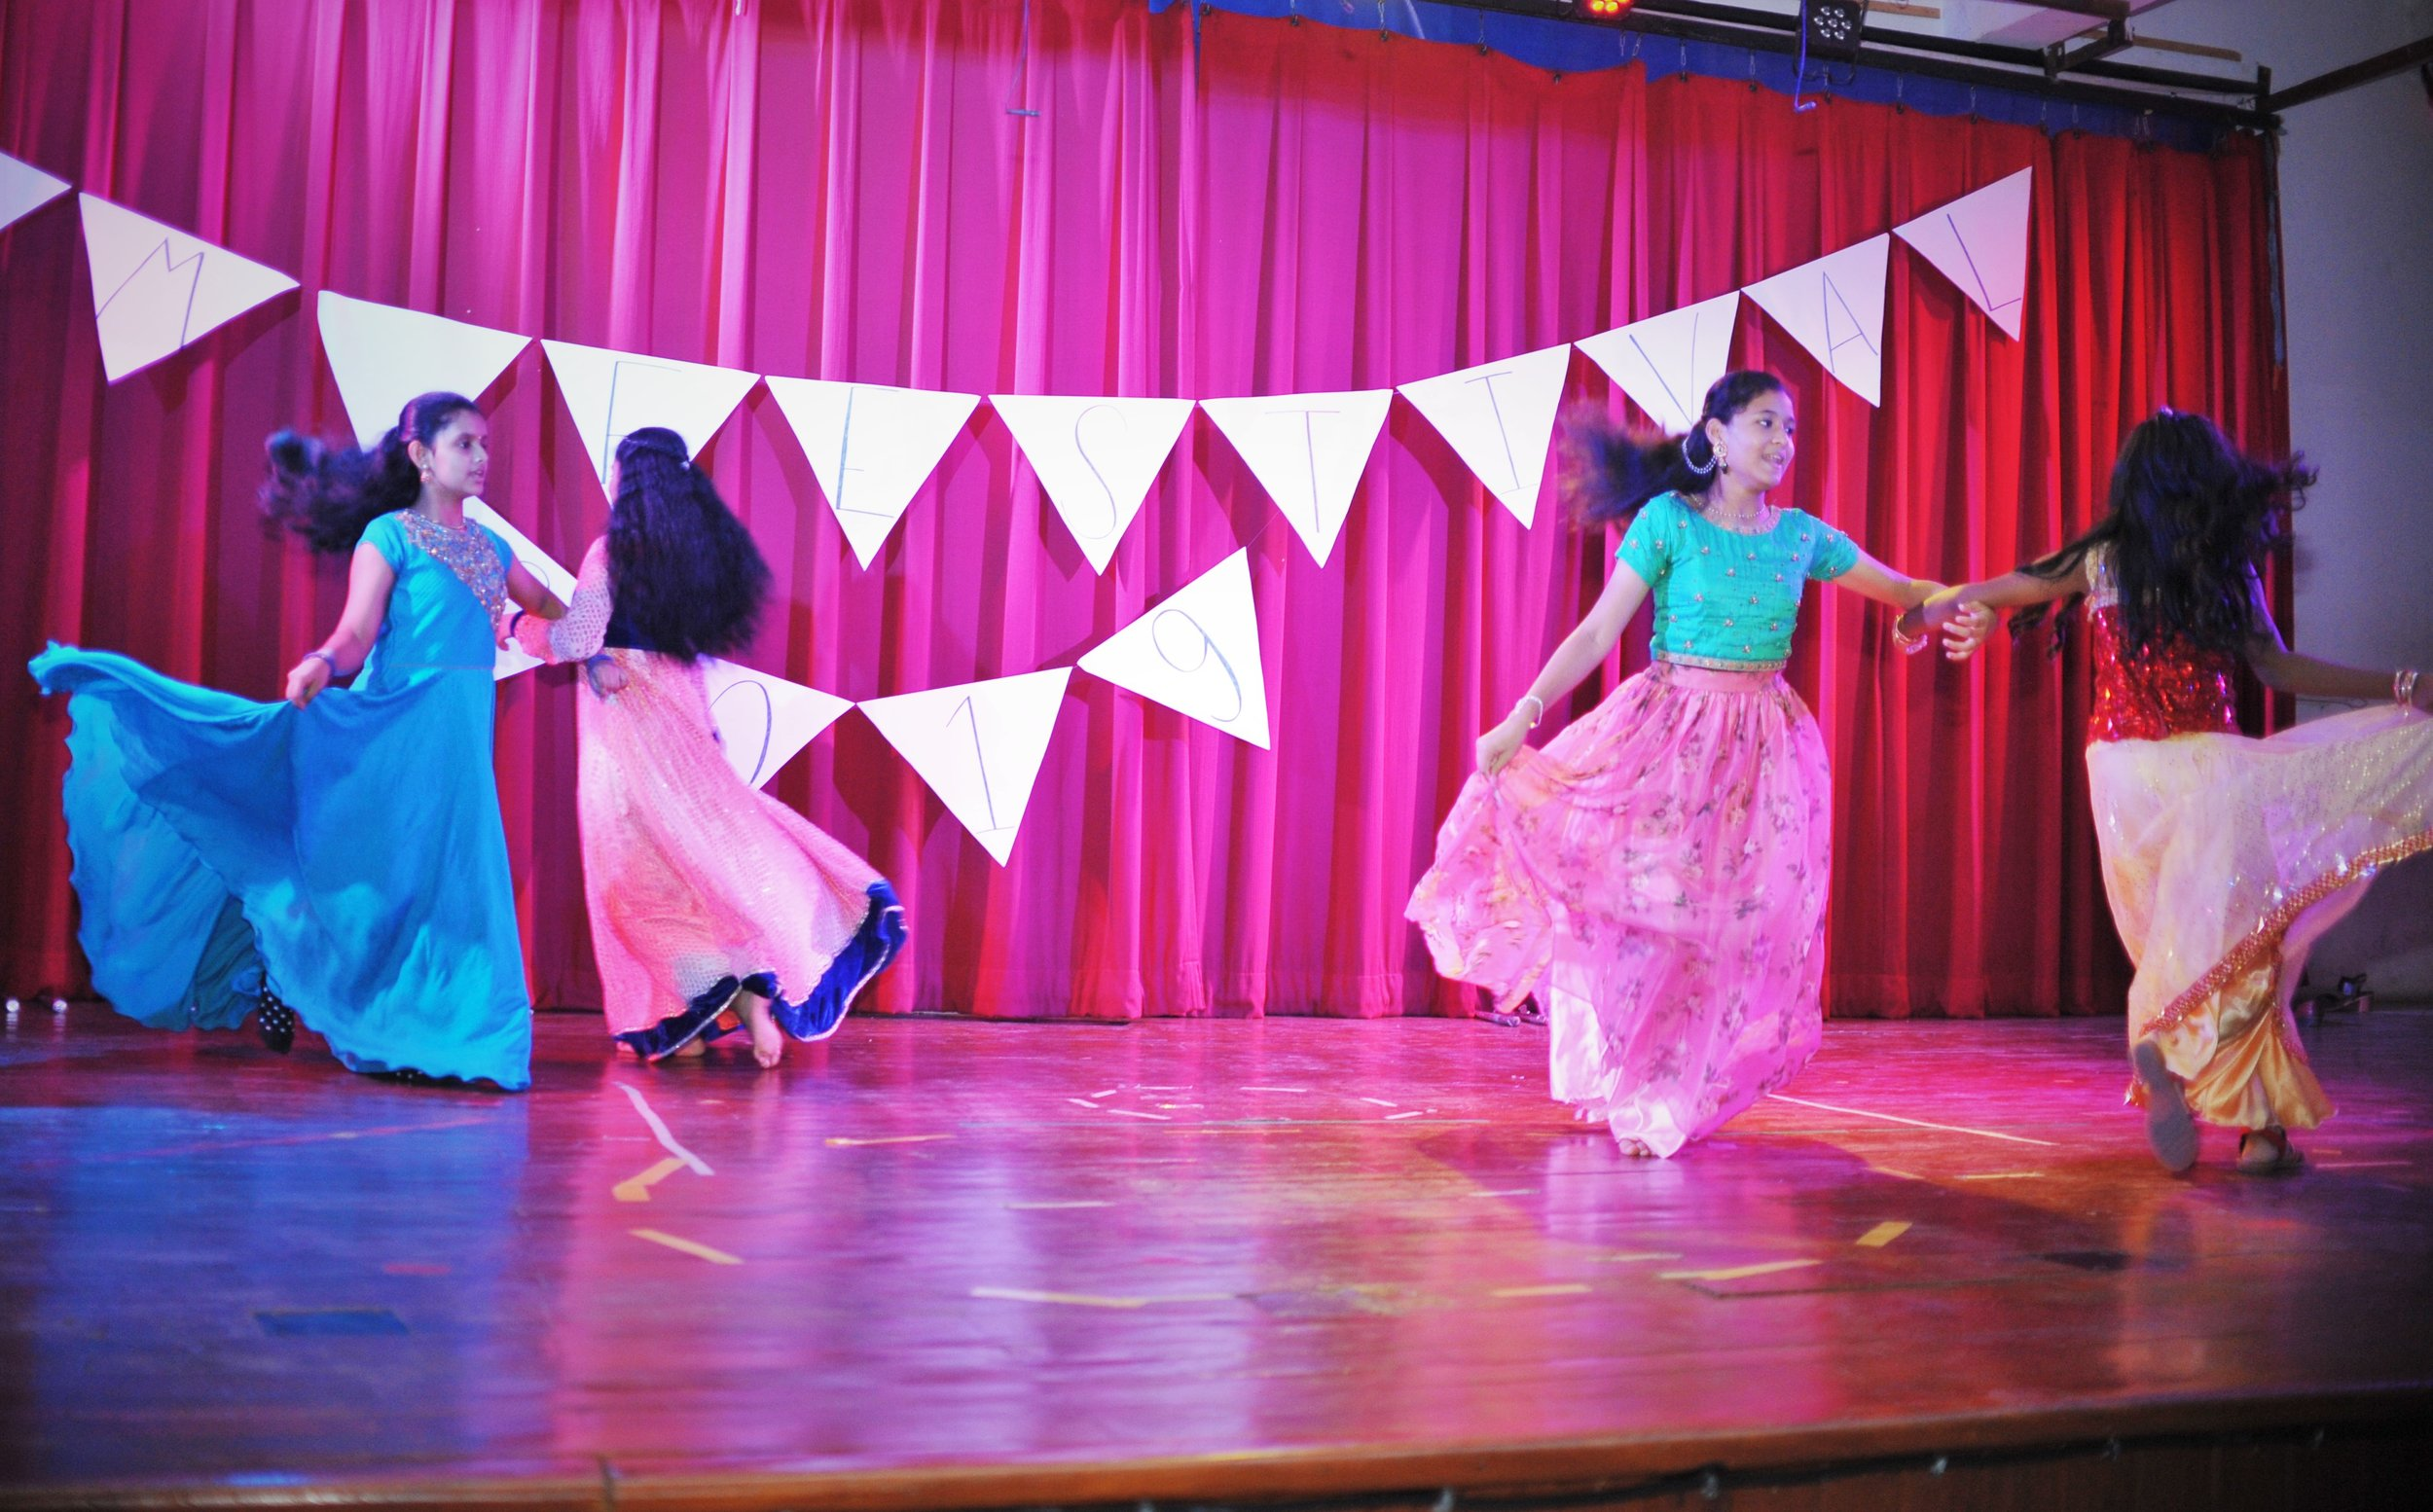 Our Indian girls gave a wonderful presentation with their gorgeous gowns and exciting dance moves!